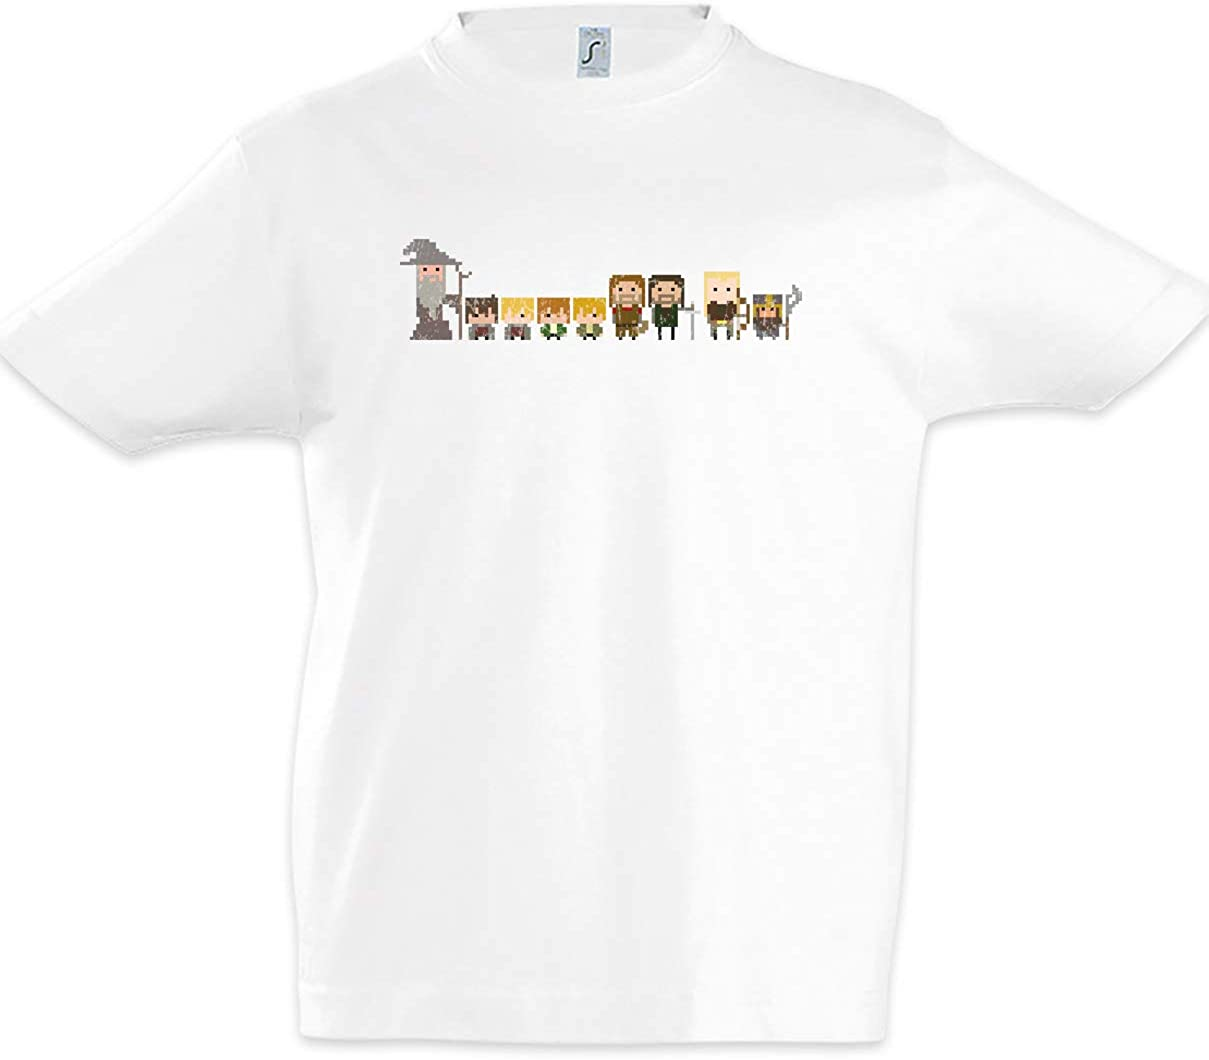 Urban Backwoods Pixel Fellowship Niños Chicos Kids T-Shirt